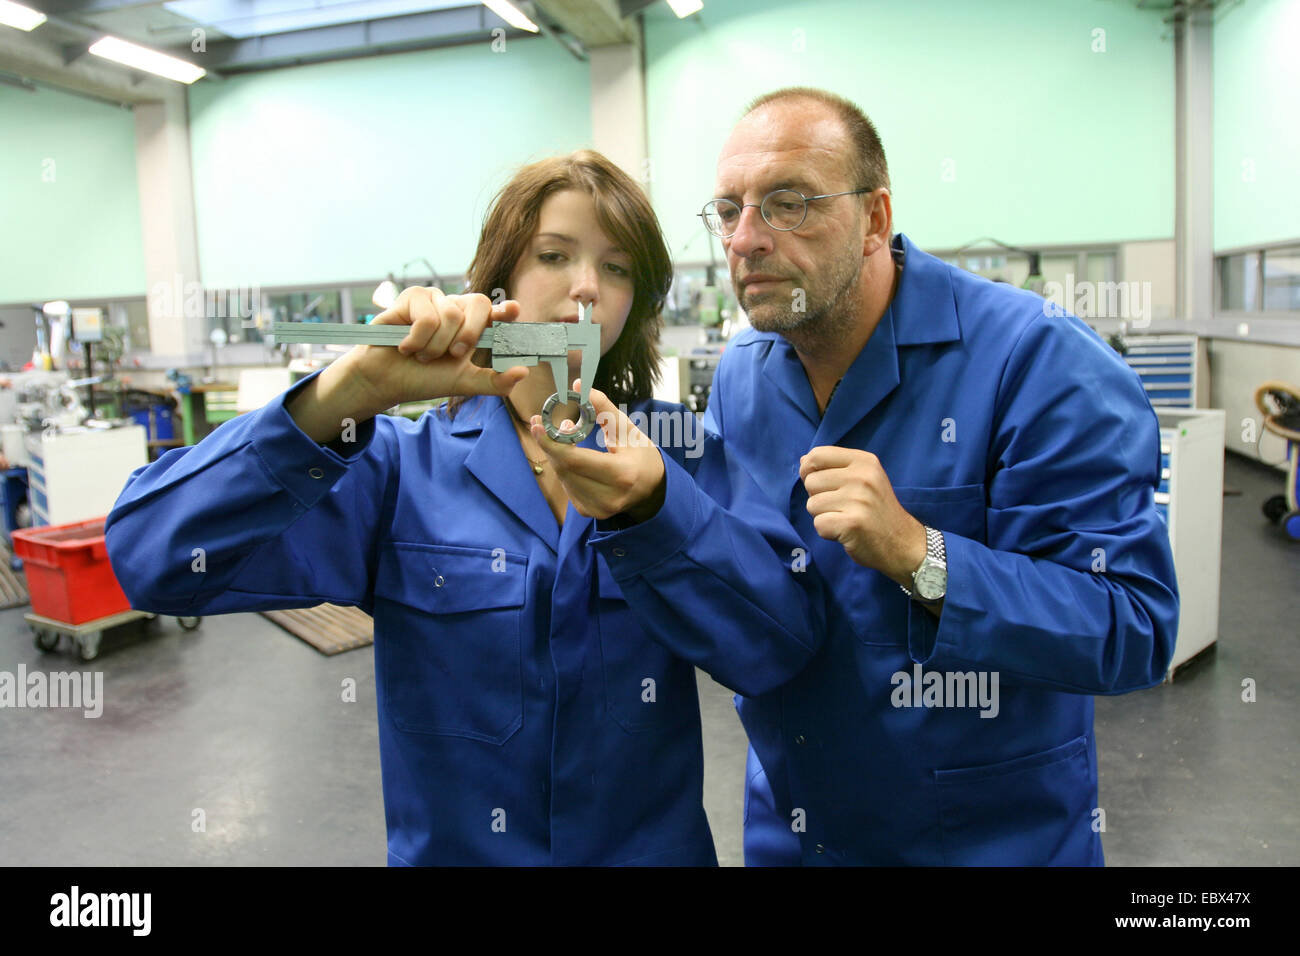 apprentice working with sliding calliper, training supervisor is watching - Stock Image